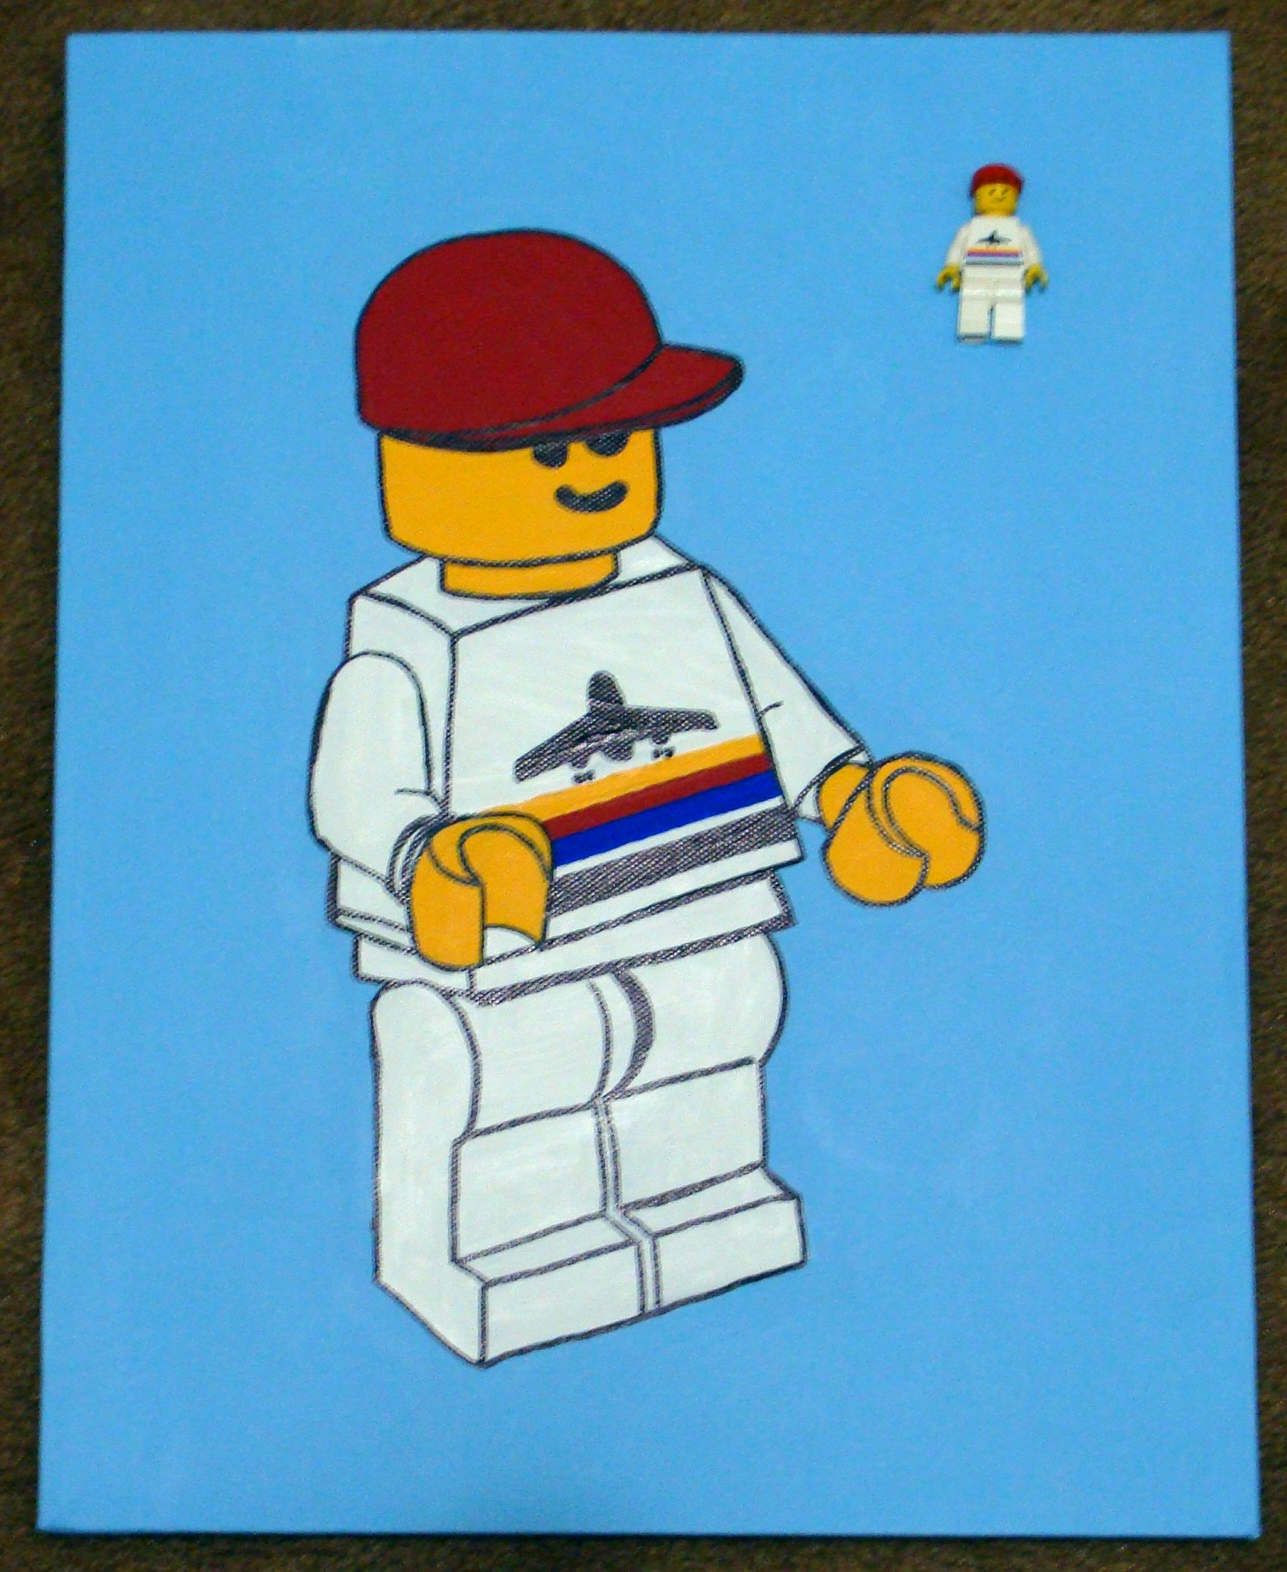 minifig_painting_airport_employee_with_minifig_for_scale.jpg